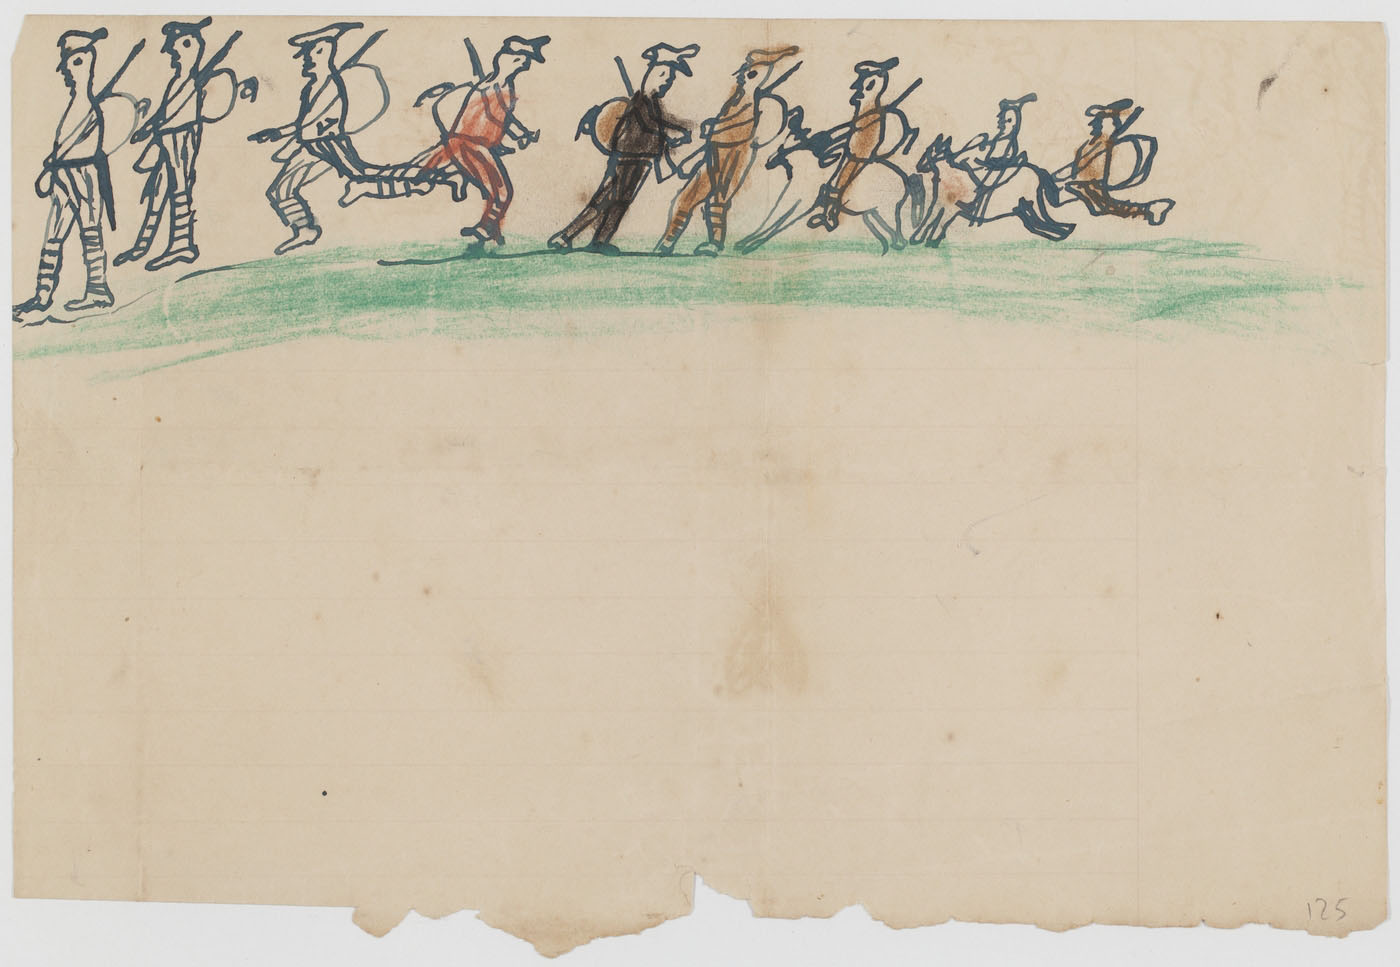 A drawing depicting soldiers marching on a green plain.